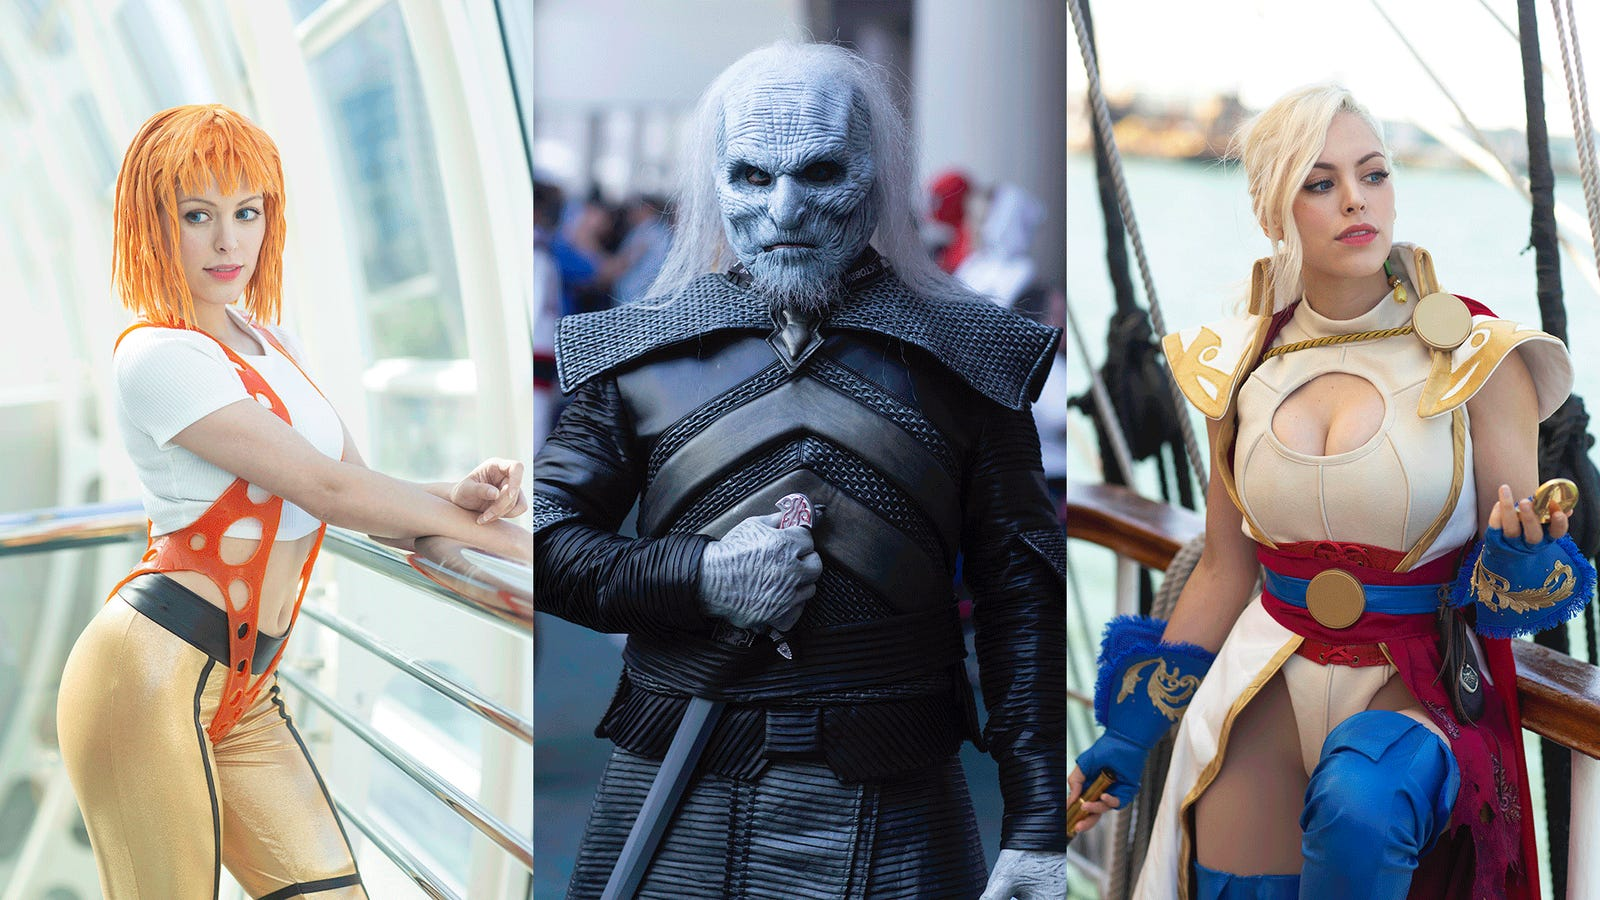 Our Favorite Cosplay From San Diego Comic-Con 2019